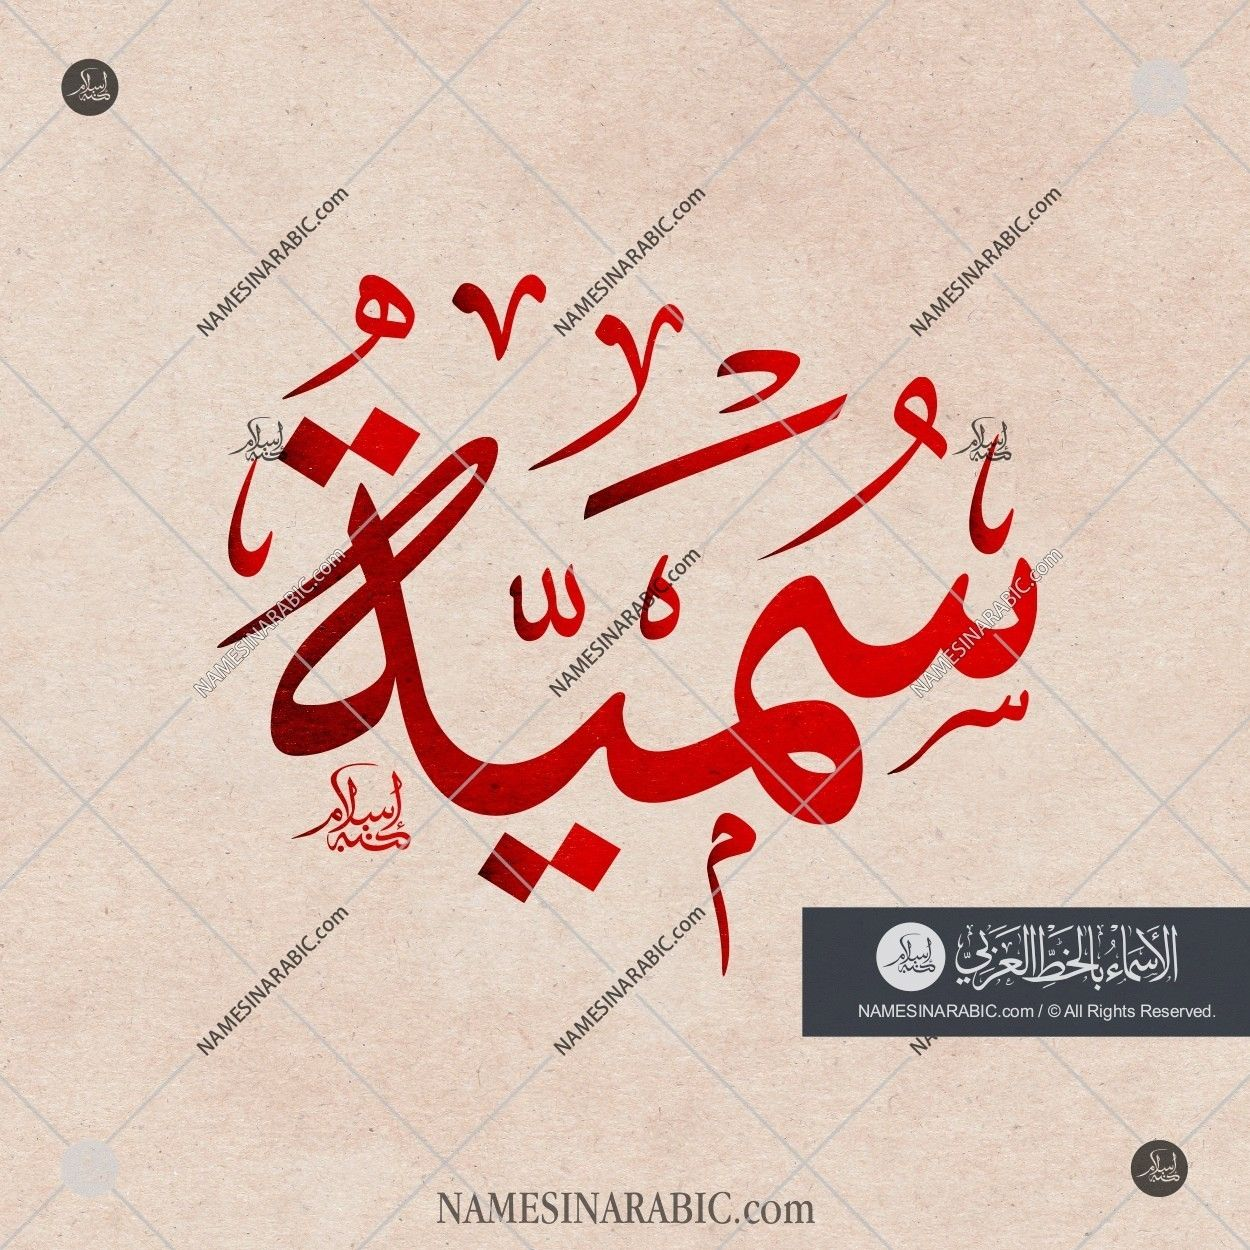 Sumayah سمية Names In Arabic Calligraphy Name 3490 Calligraphy Name Arabic Calligraphy Design Islamic Calligraphy